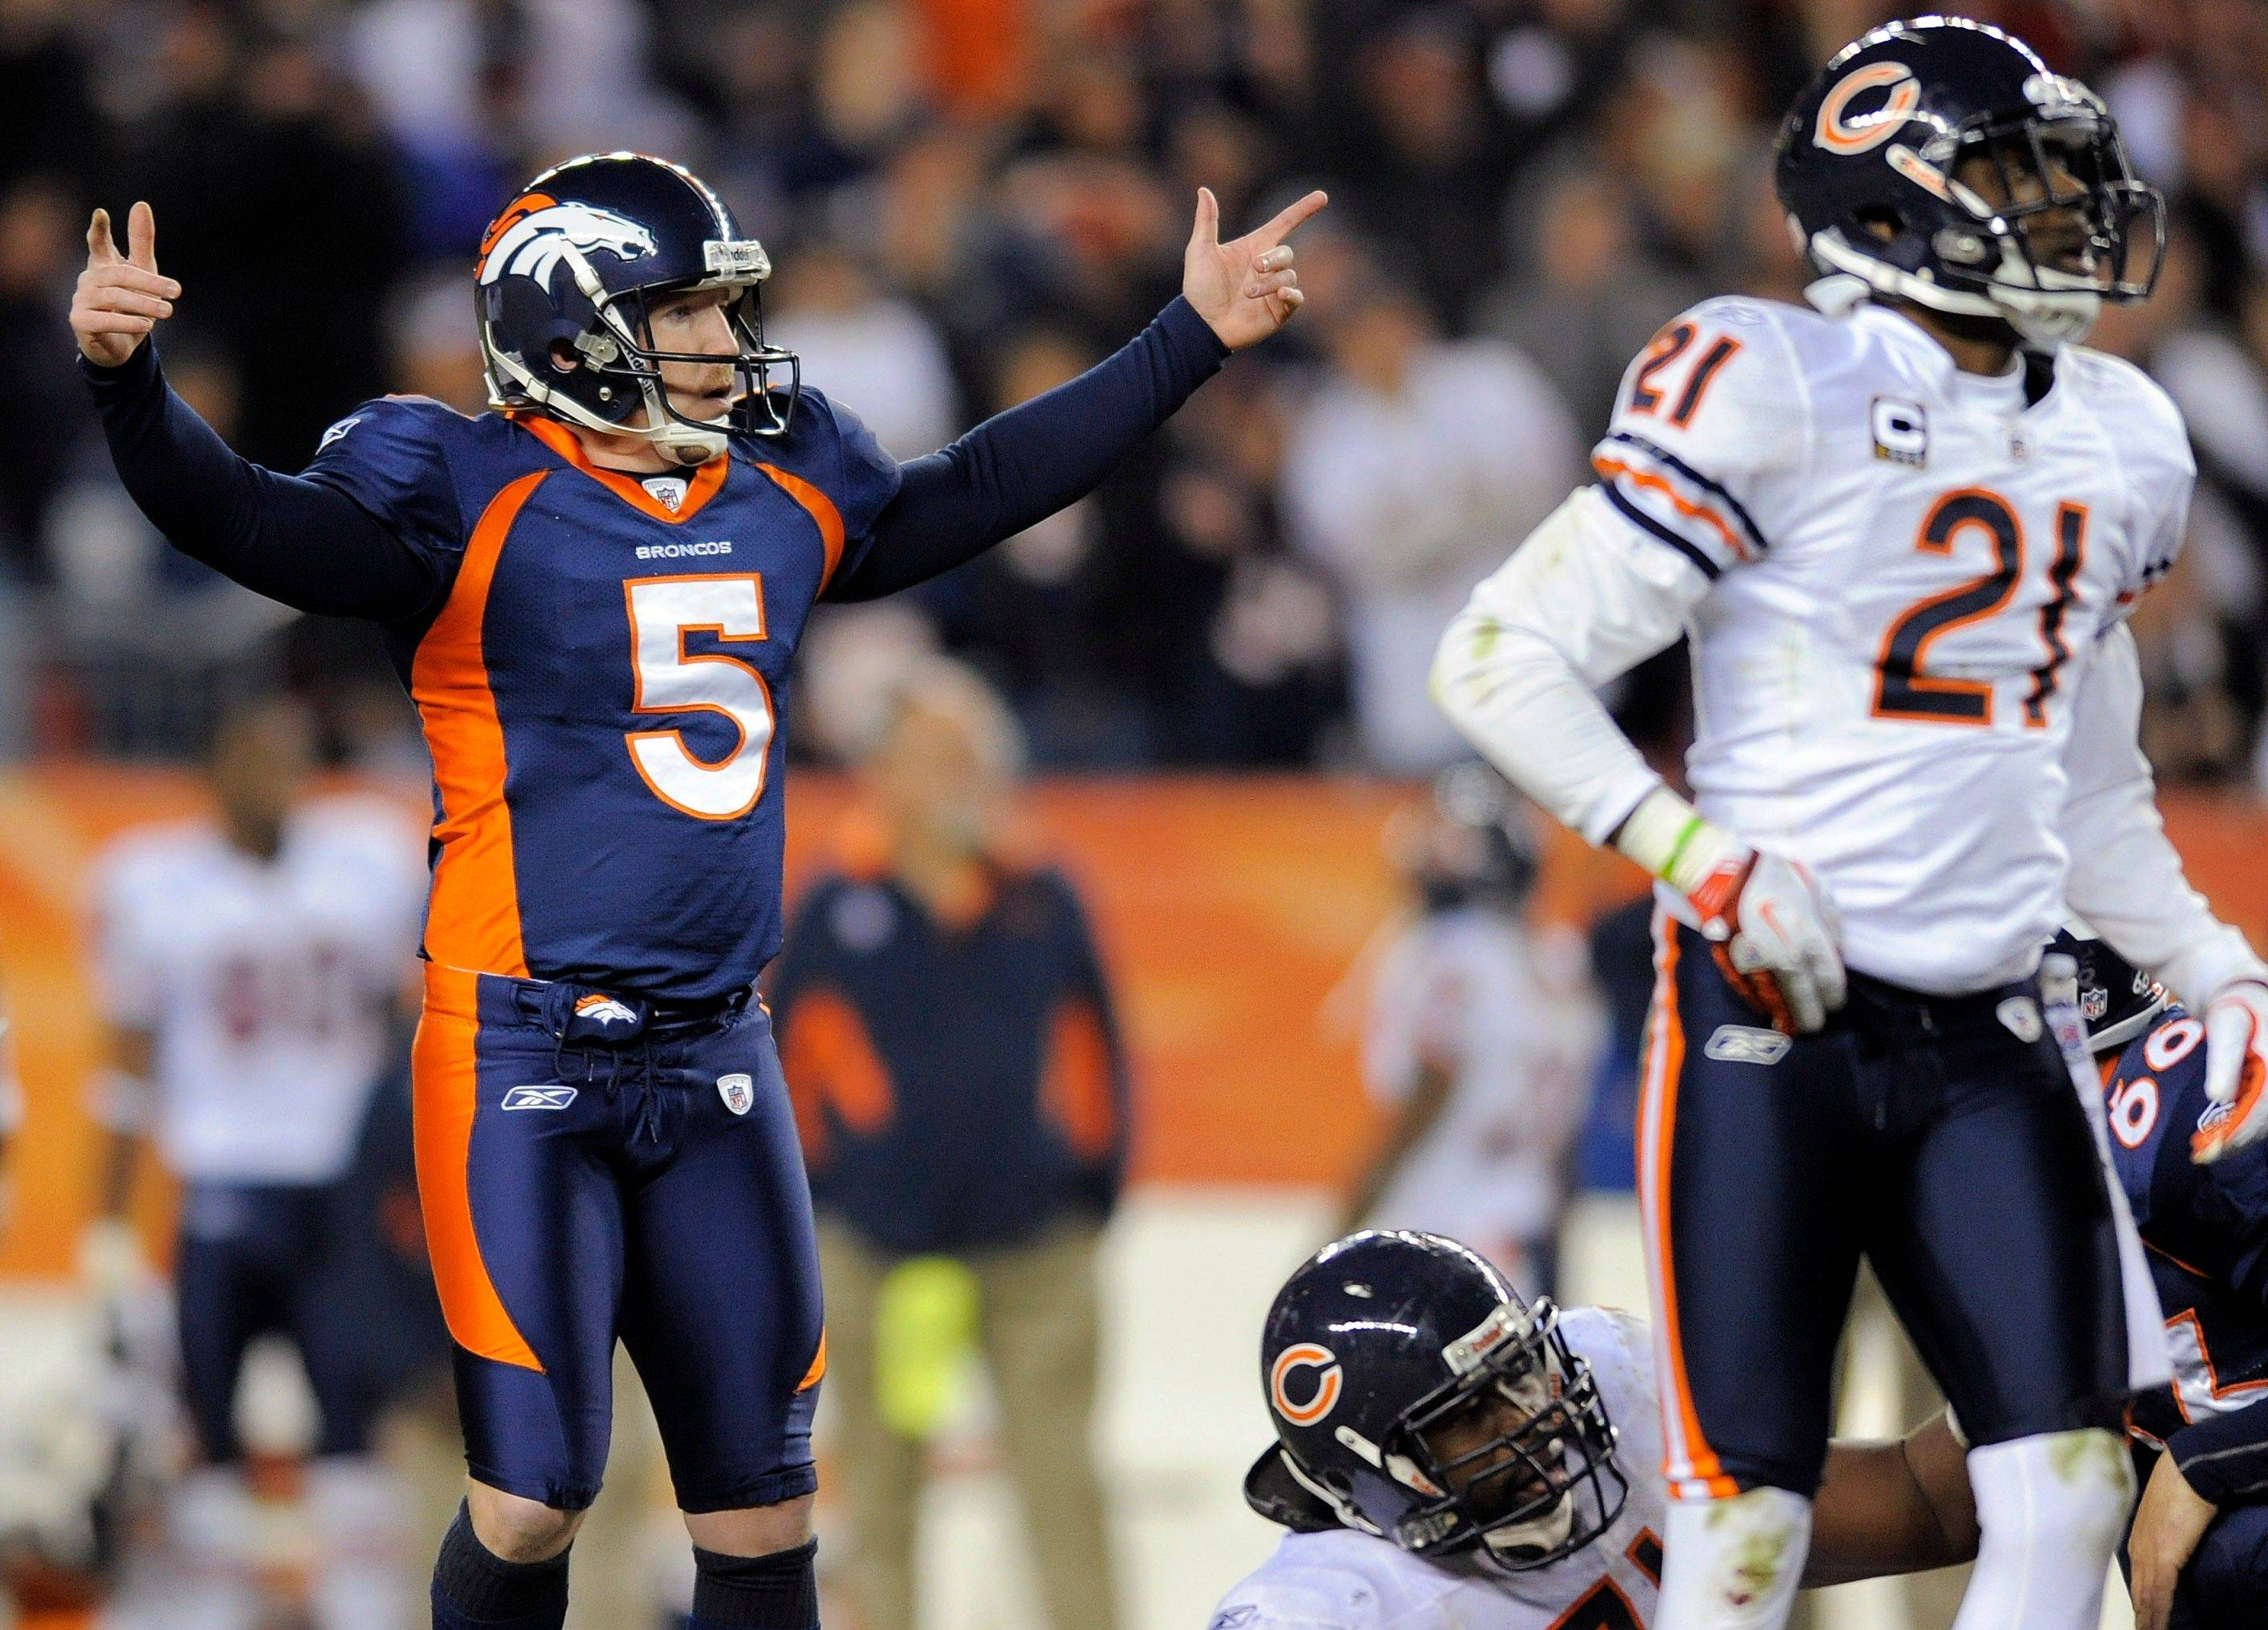 Denver Broncos kicker Matt Prater (5) reacts as his 59-yard field goal attempt with 8 seconds remaining in the fourth quarter goes through the uprights as Chicago Bears defensive back Corey Graham (21) looks on in an NFL football game.